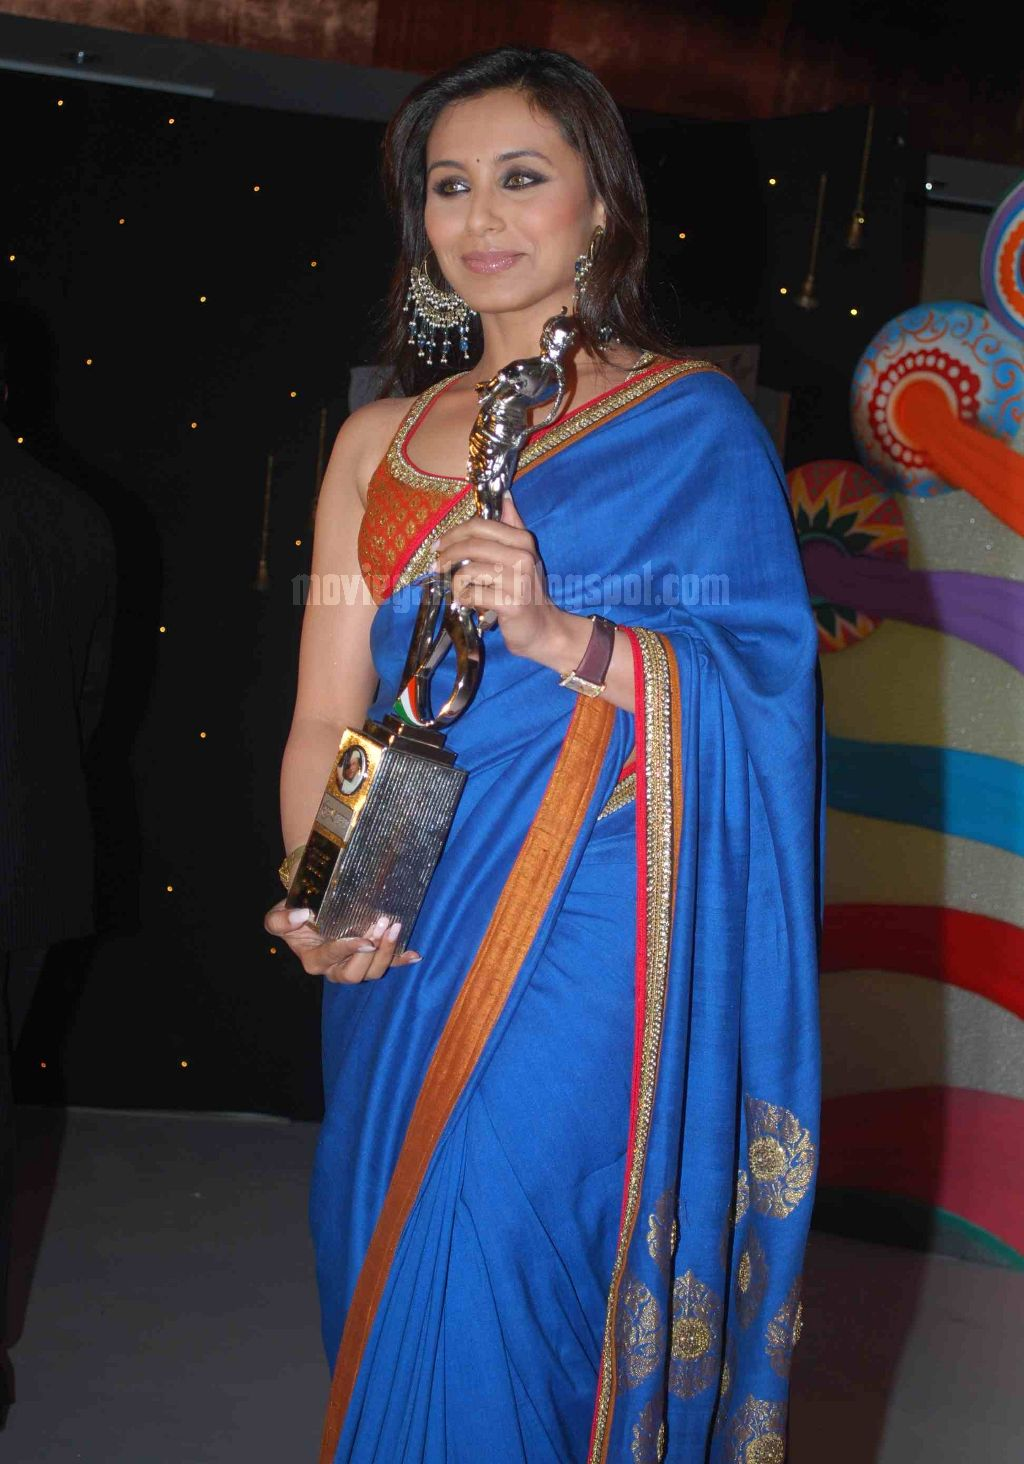 Rani Mukherjee At V Shantaram Awards 2009 Pics, Stills -9548